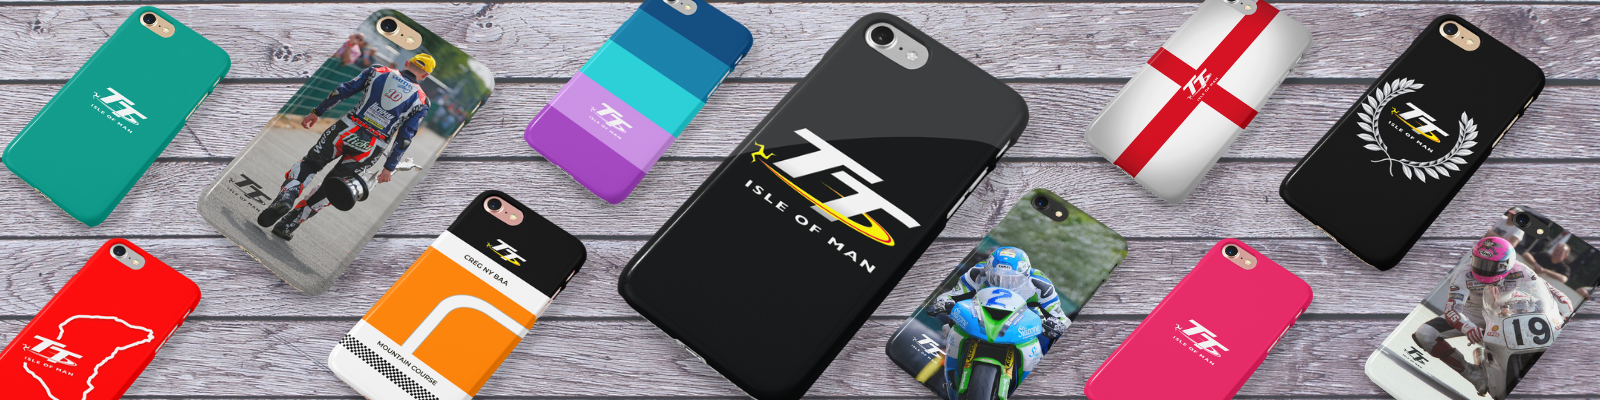 Category Banner - Phone Cases Isle of Man TT